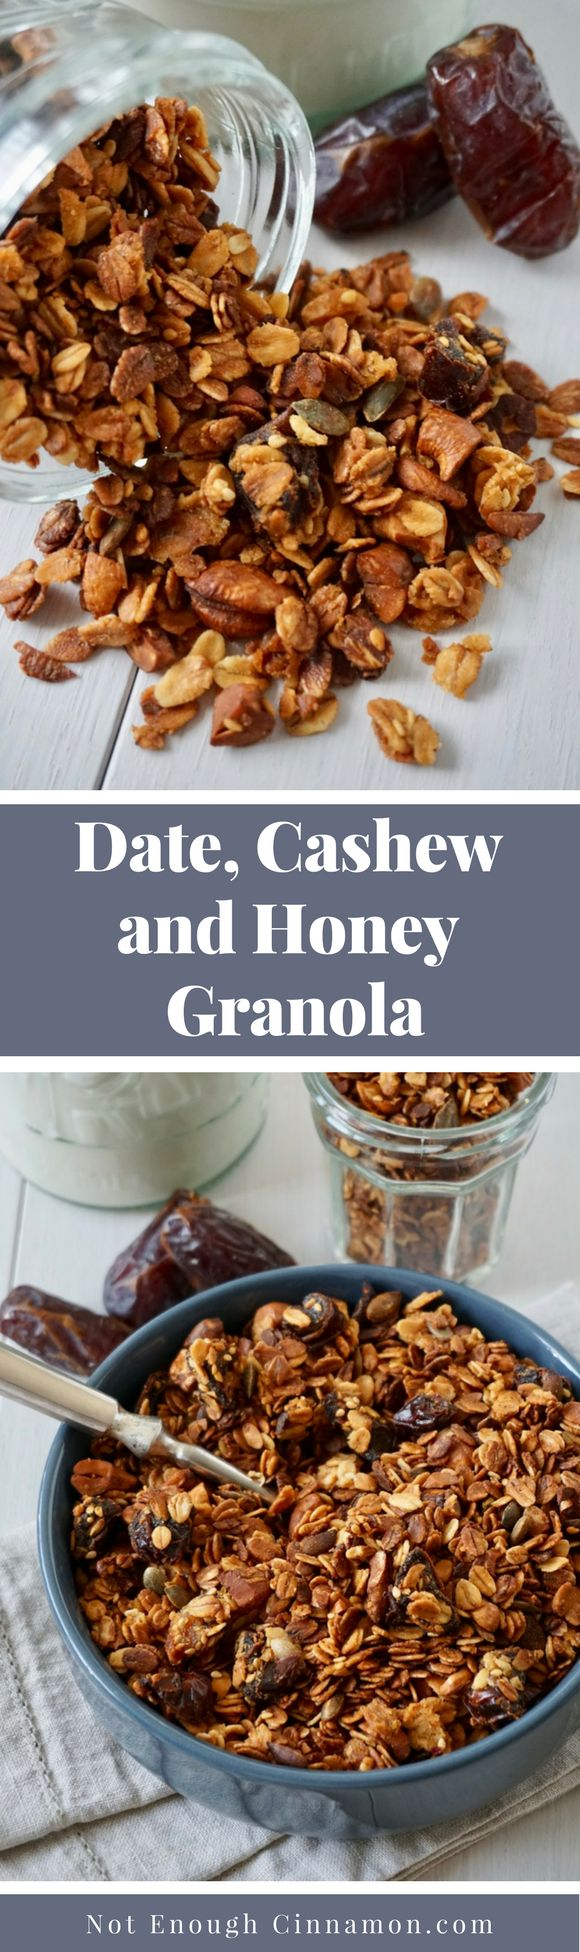 An easy homemade granola recipe that features Medjool dates, cashews and honey. Perfect for breakfast or as a snack!